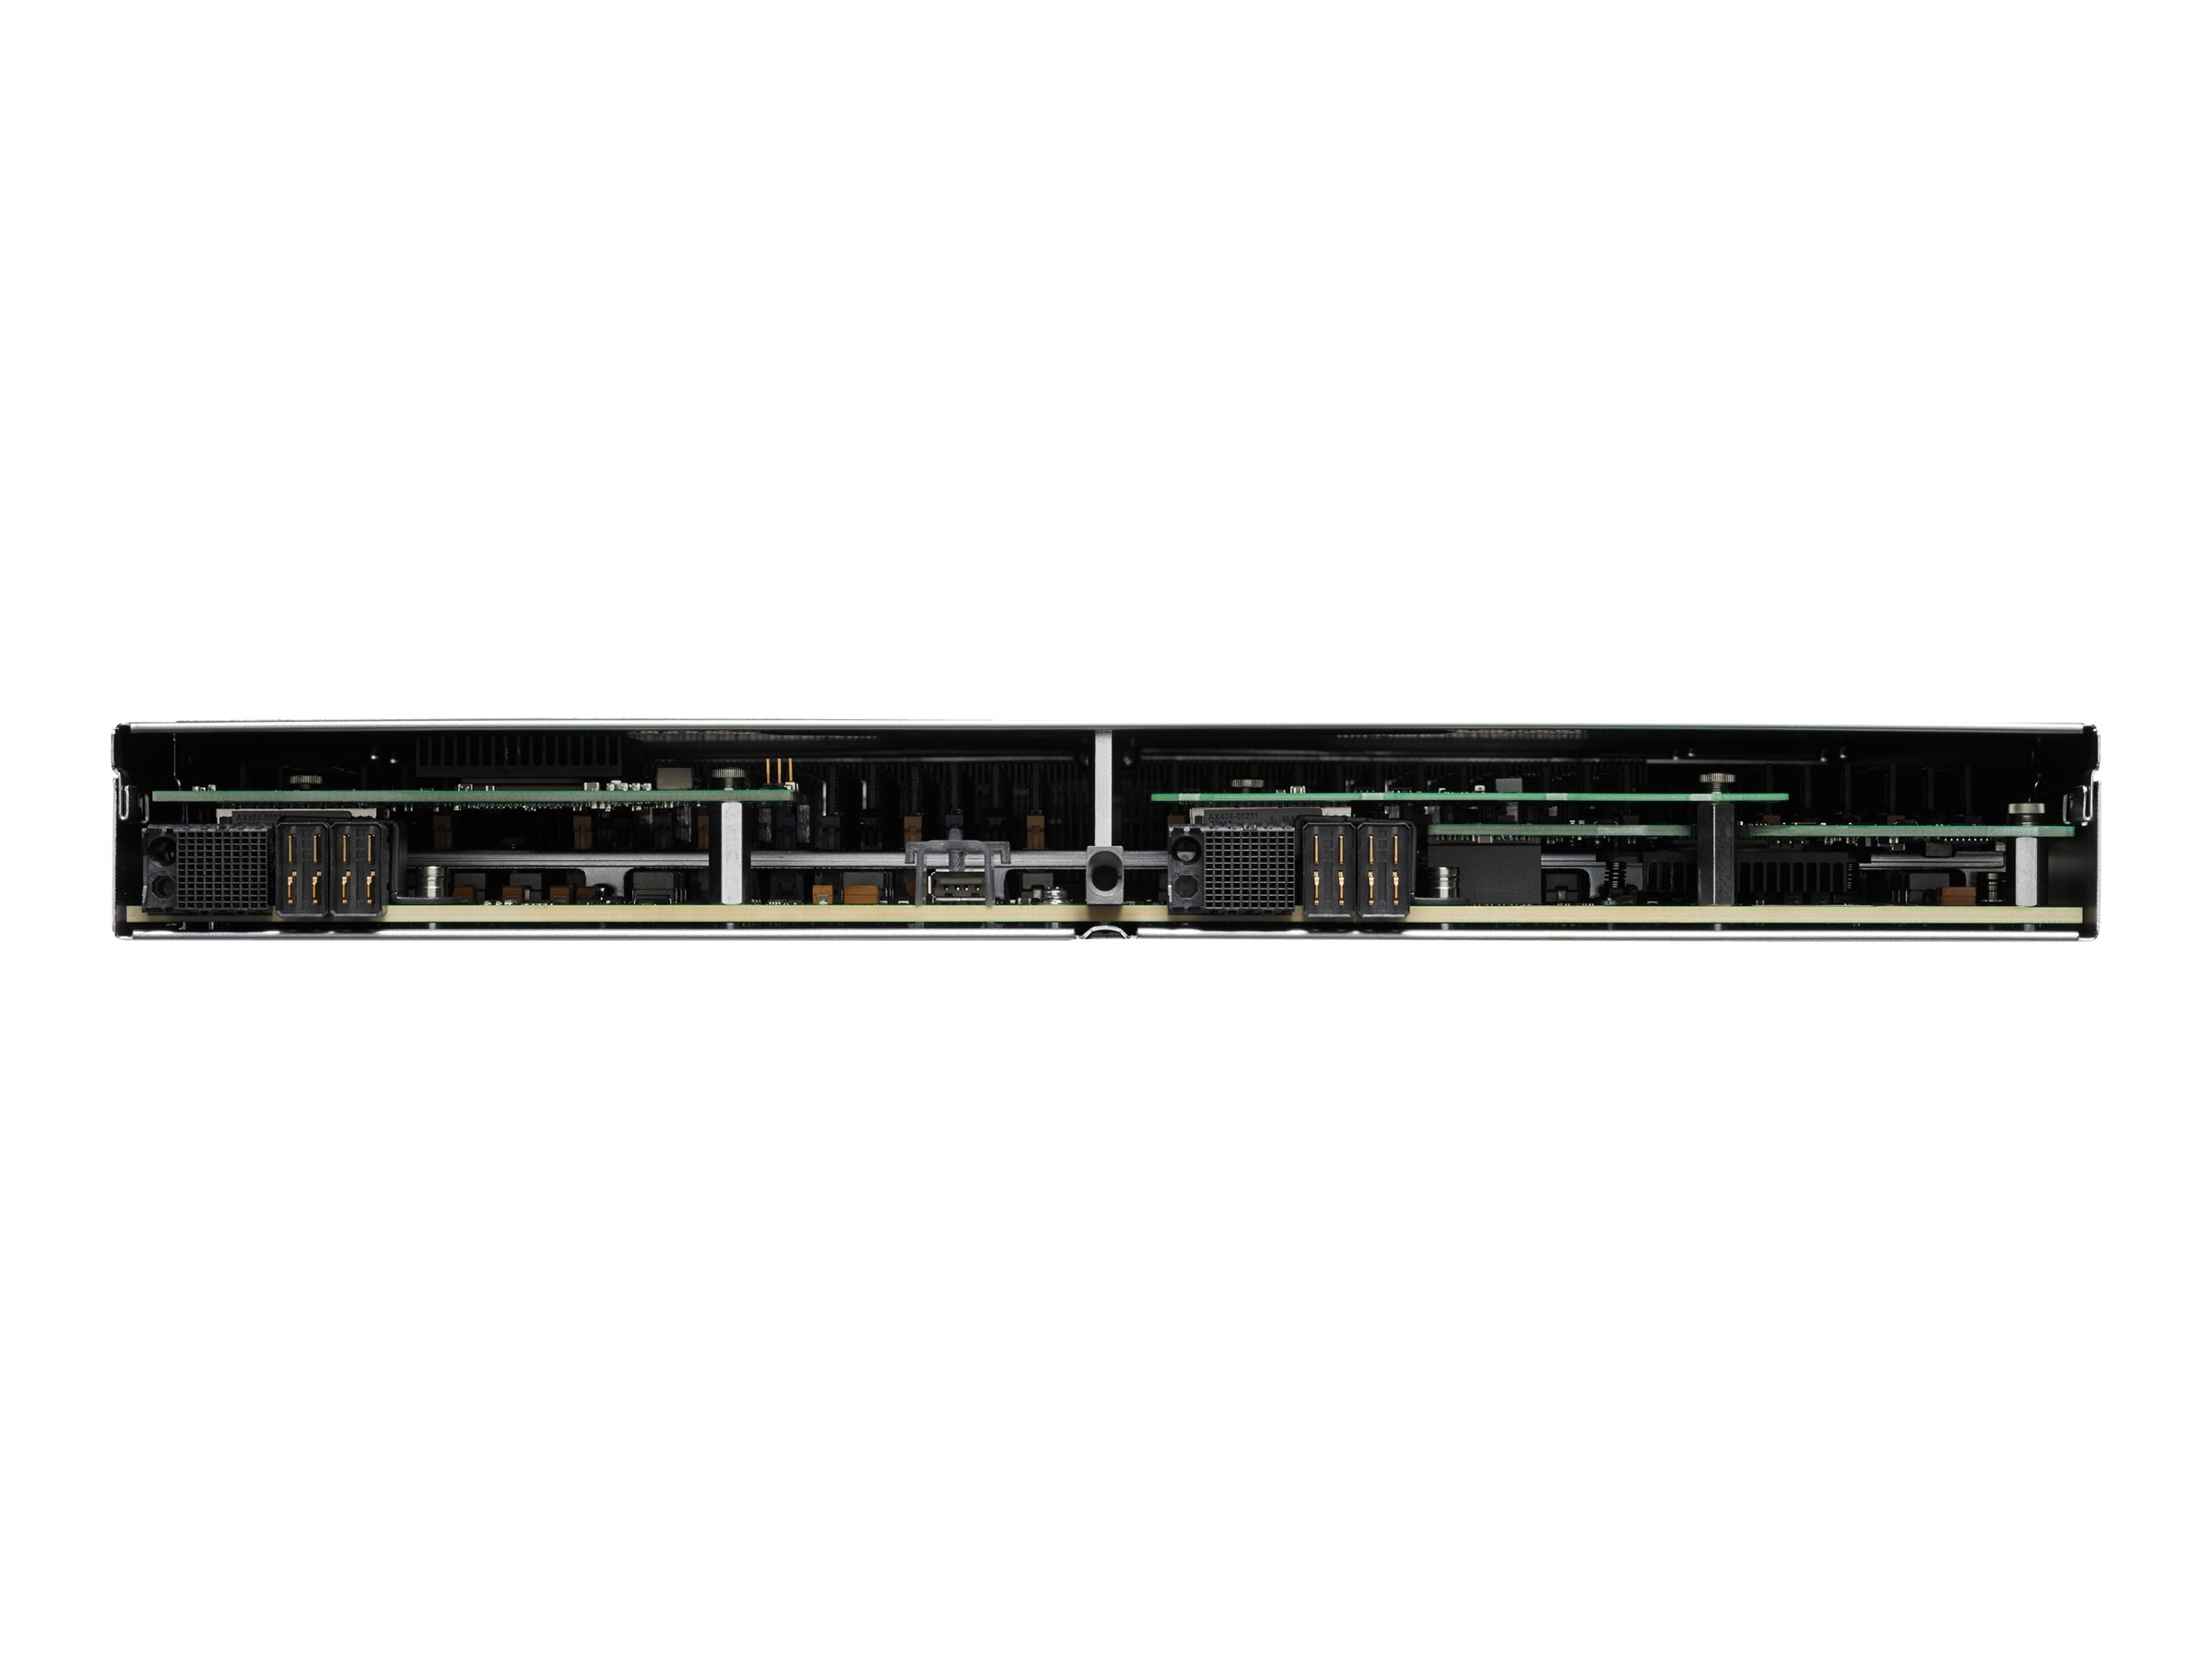 Cisco UCS B260 M4 Entry SmartPlay Expansion Pack Blade (2x)Xeon E7-2850 v2 256GB DDR3 VIC1280 VIC1240, UCS-EZ8-B260M4-E